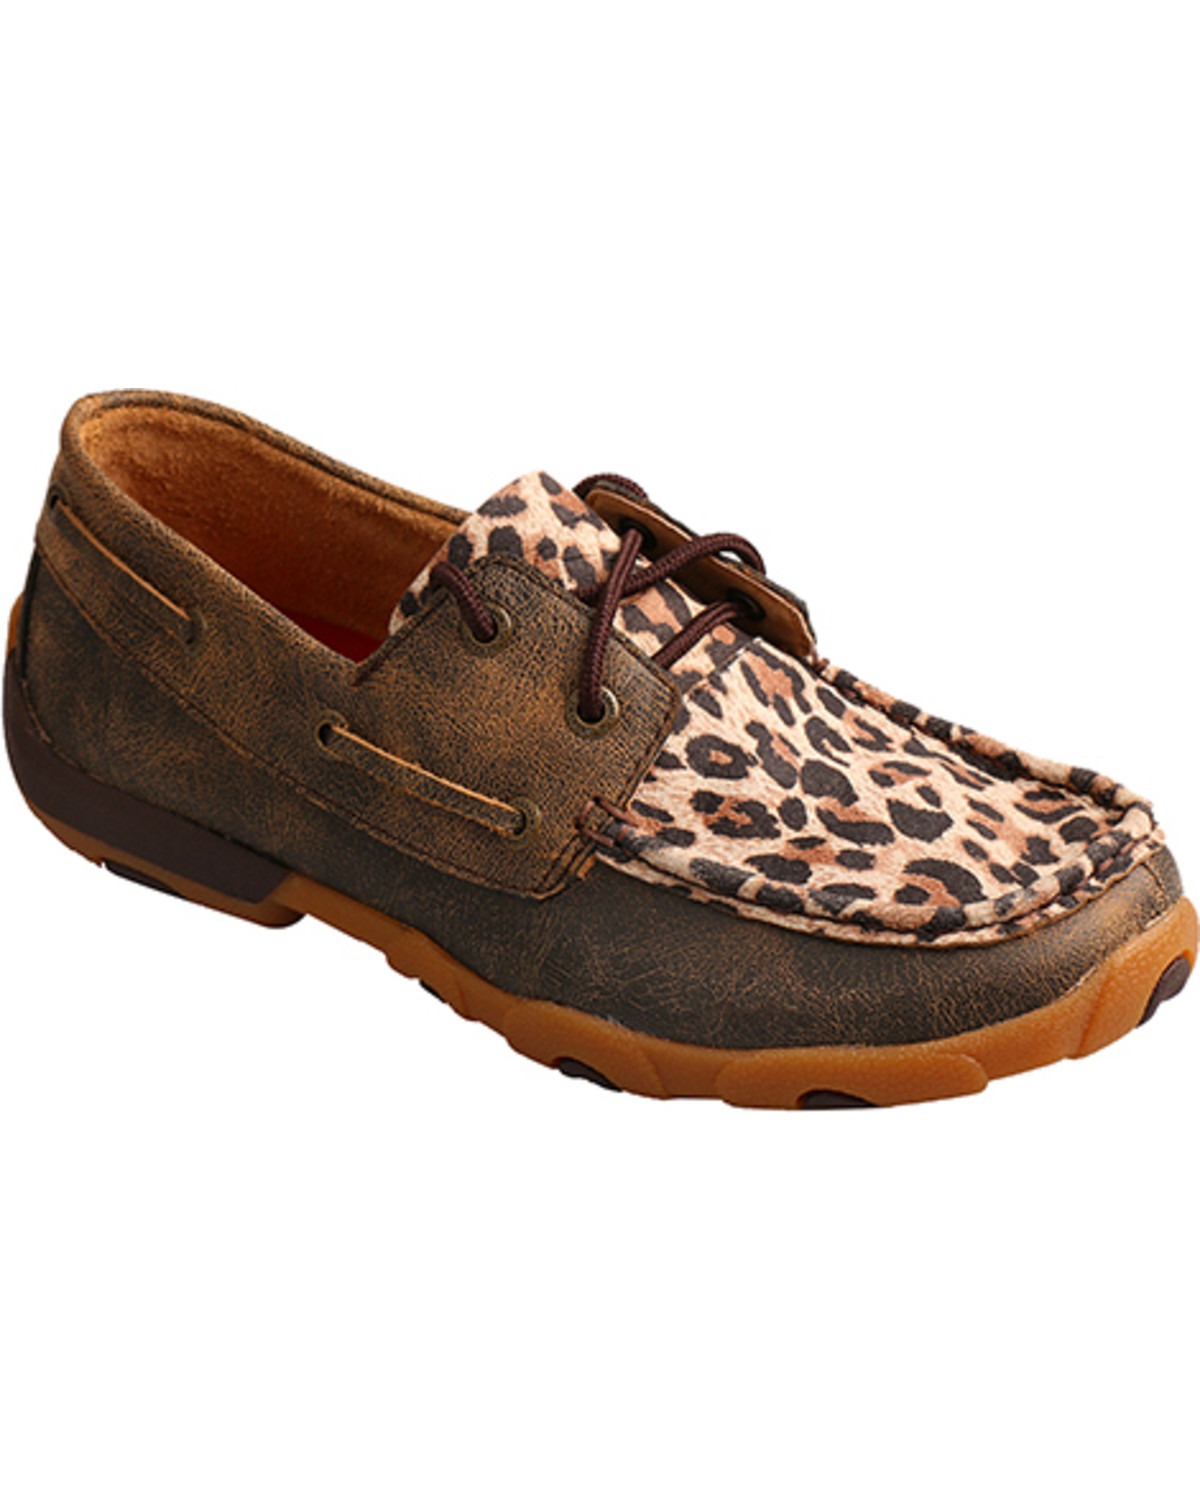 Twisted X Boots Women's Cheetah Print Driving Mocs